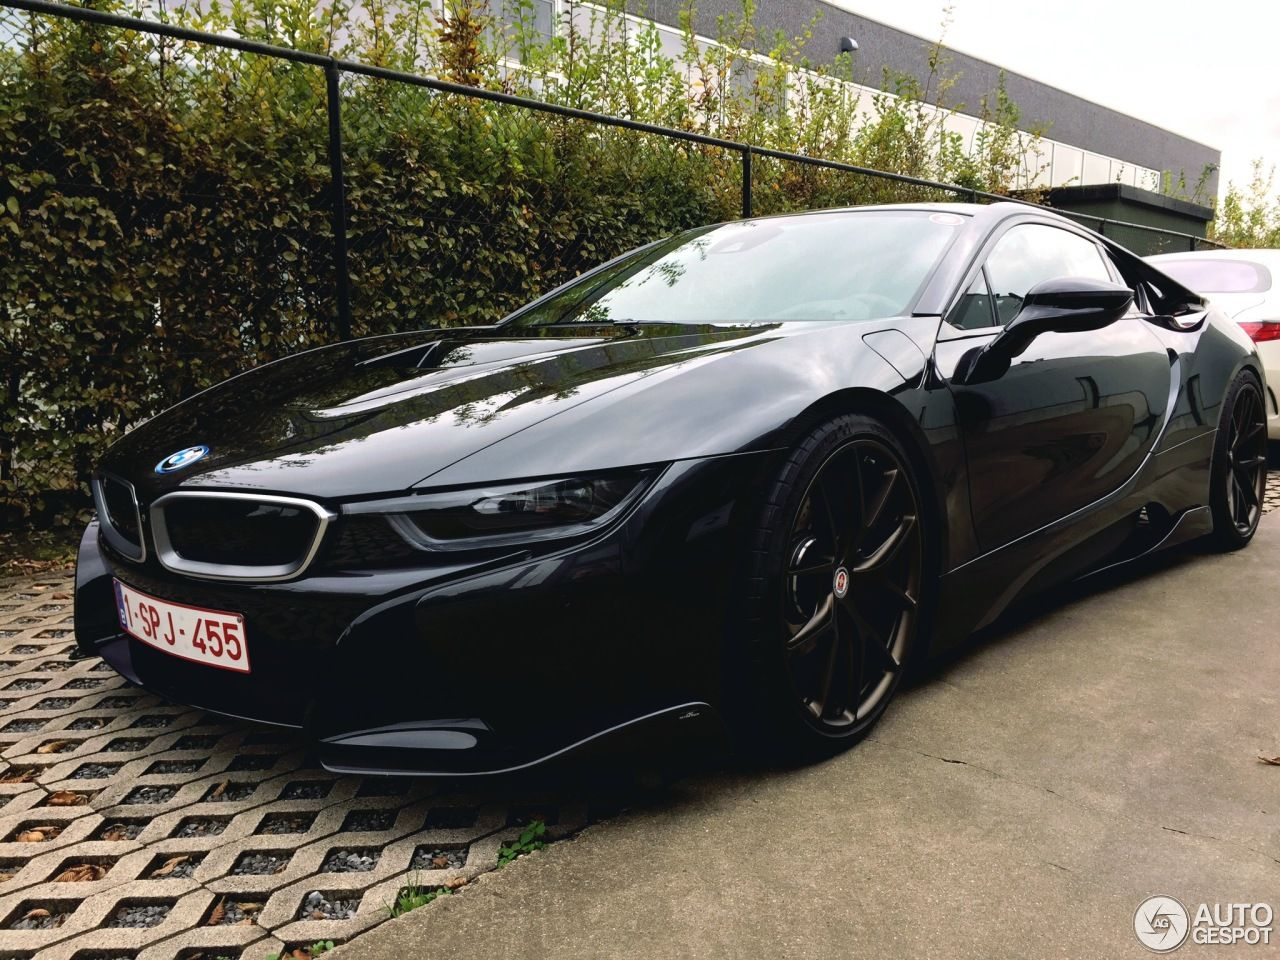 All Black Ac Schnitzer Tuned Bmw I8 Is What Kitt Would Look Like Today Bmw I8 Bmw Cars